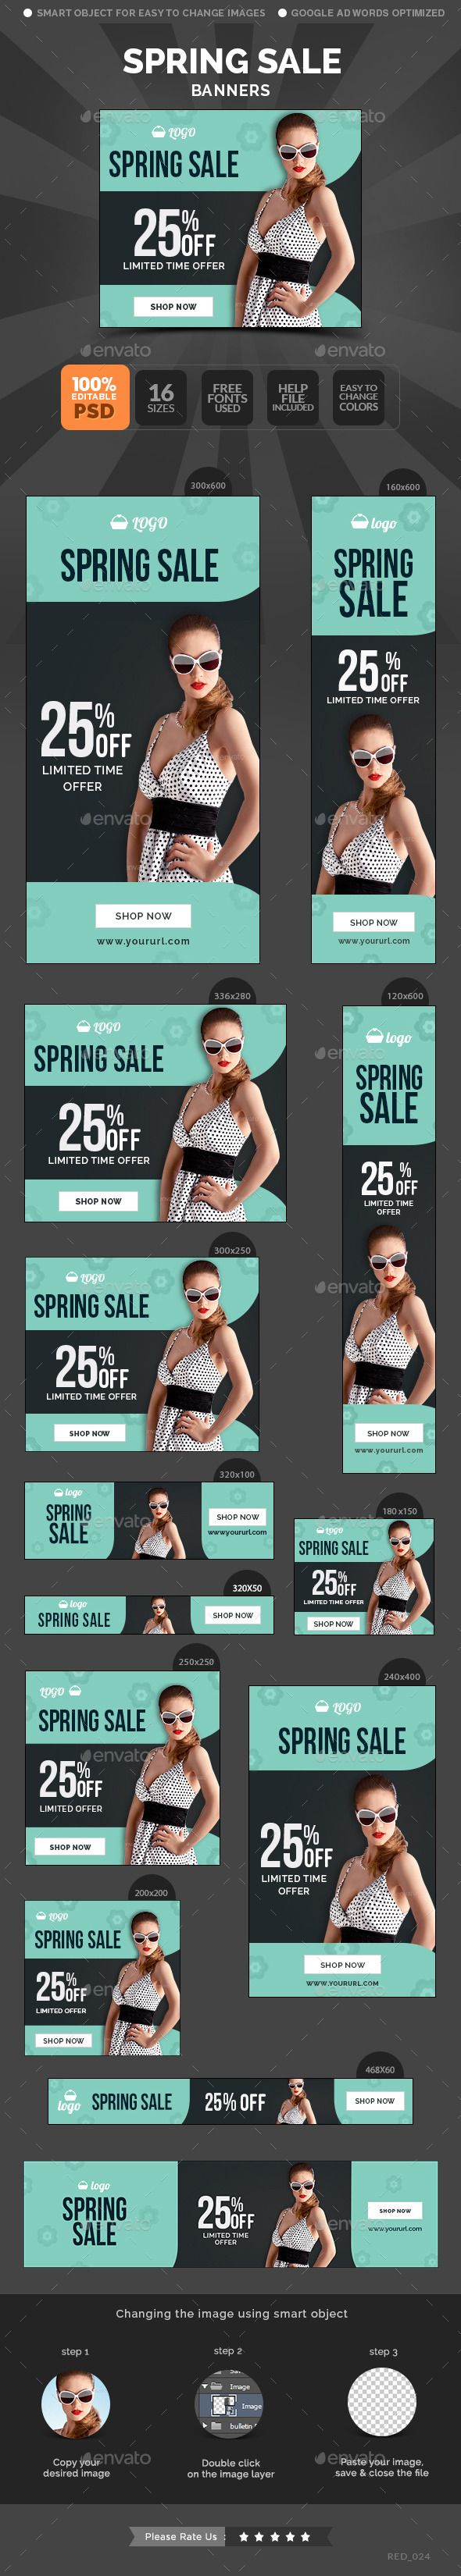 Spring Sale Banners Template PSD #banner #webbanner #design Download: http://graphicriver.net/item/spring-sale-banners/10654650?ref=ksioks